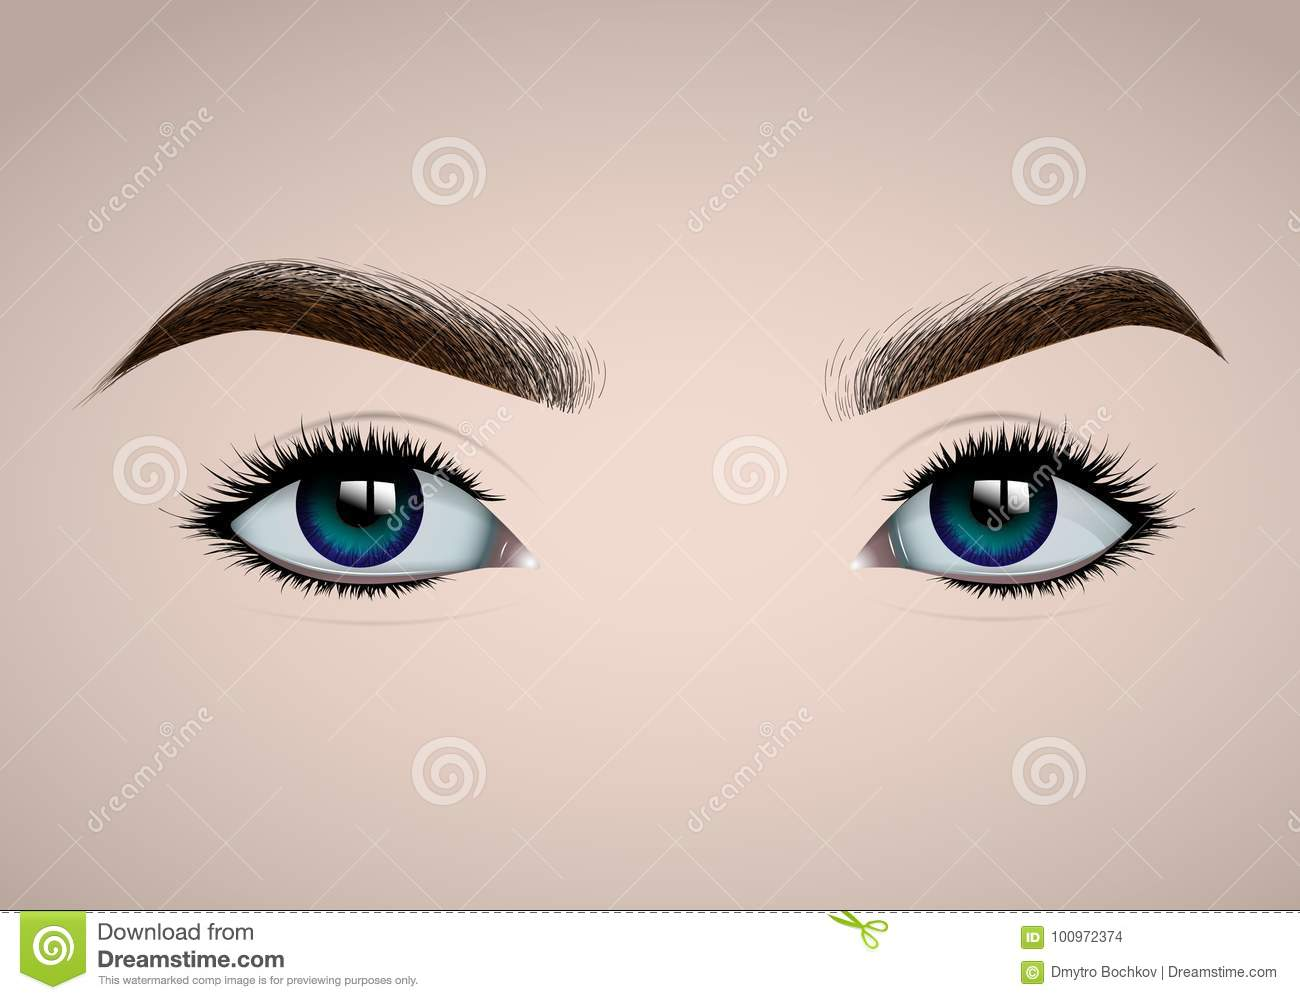 Beautiful realistic female eyes and eyebrows for fashion design